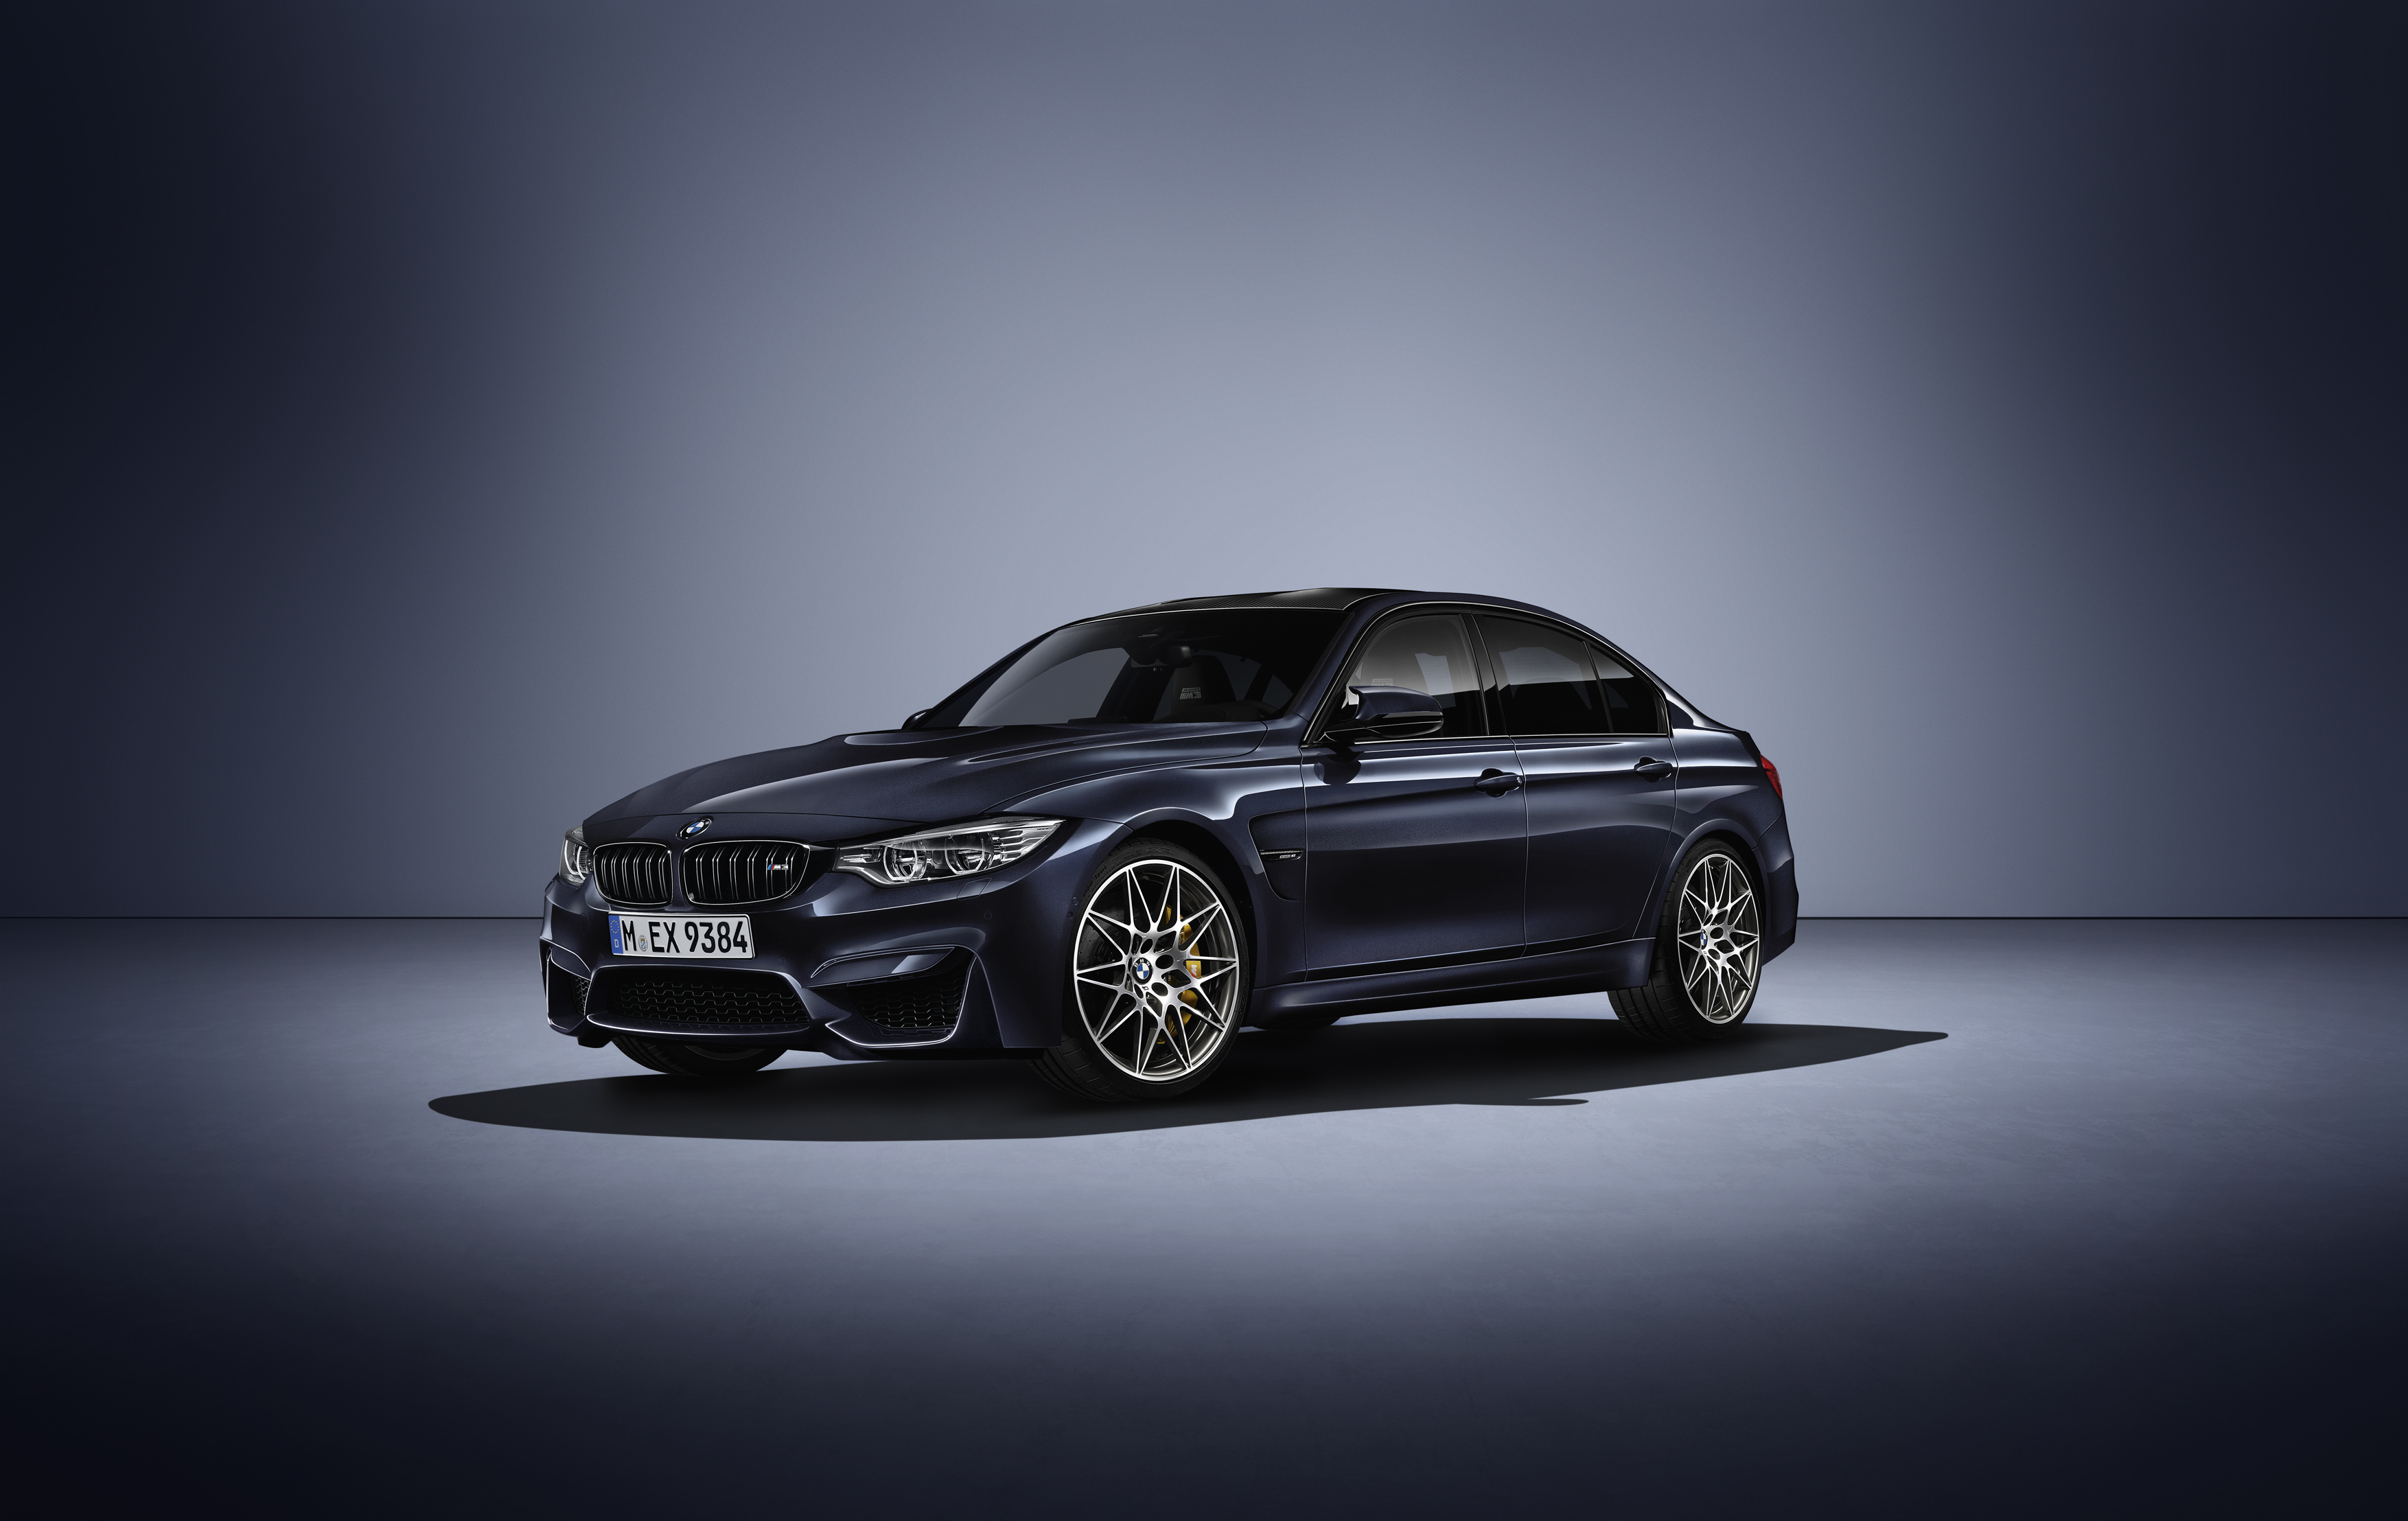 82170 free wallpaper 1125x2436 for phone, download images Bmw, Cars, Side View, M3 1125x2436 for mobile